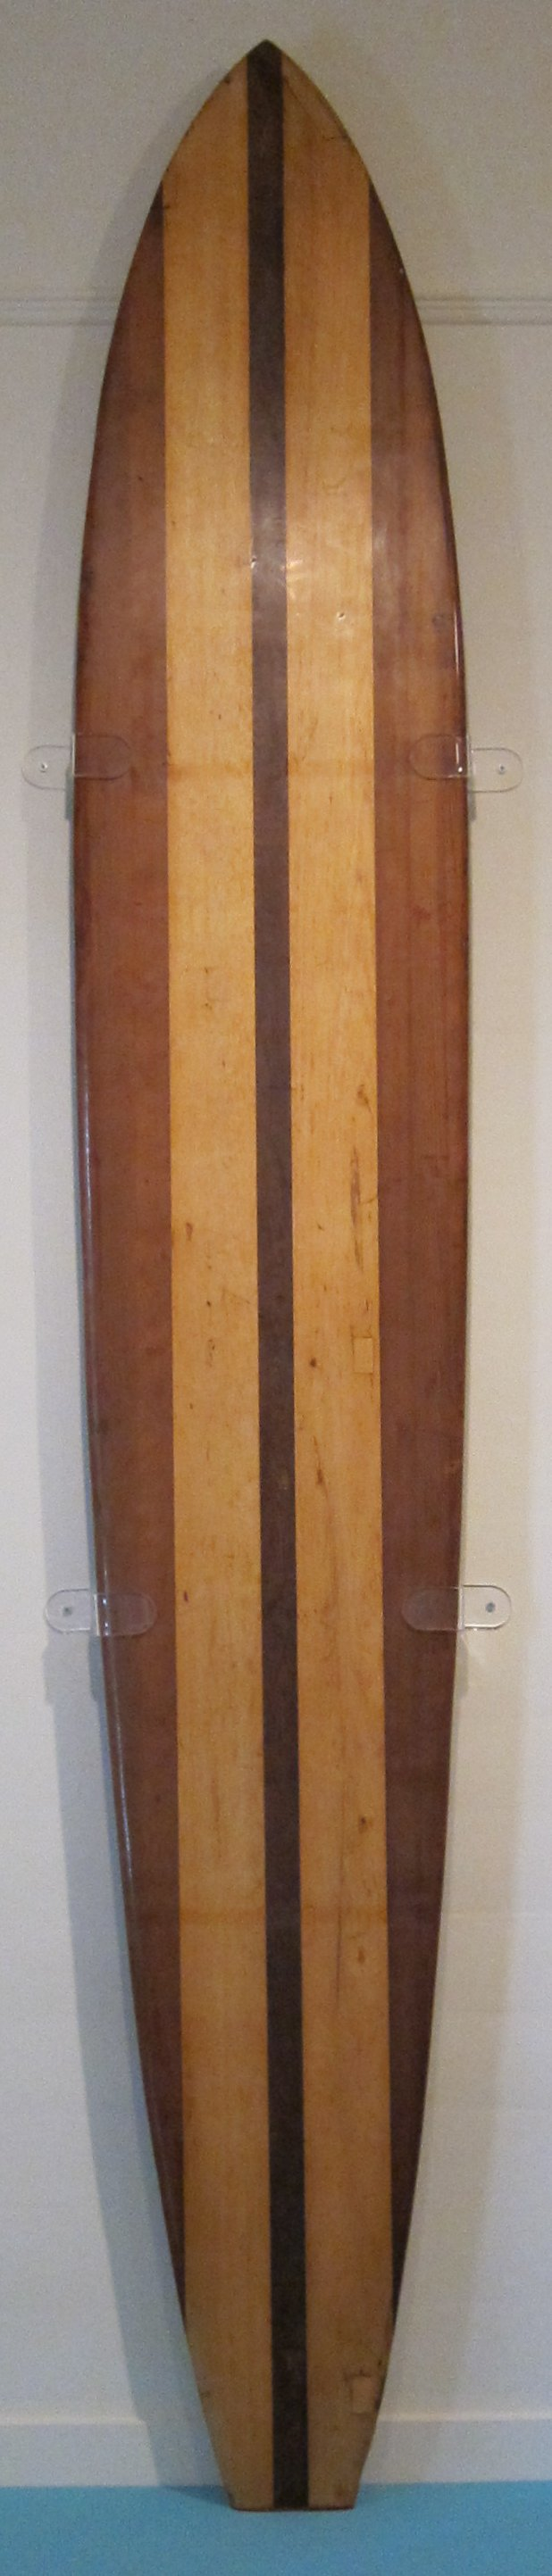 File Hot Curl Surfboard Redwood And Balsa Wood Made In